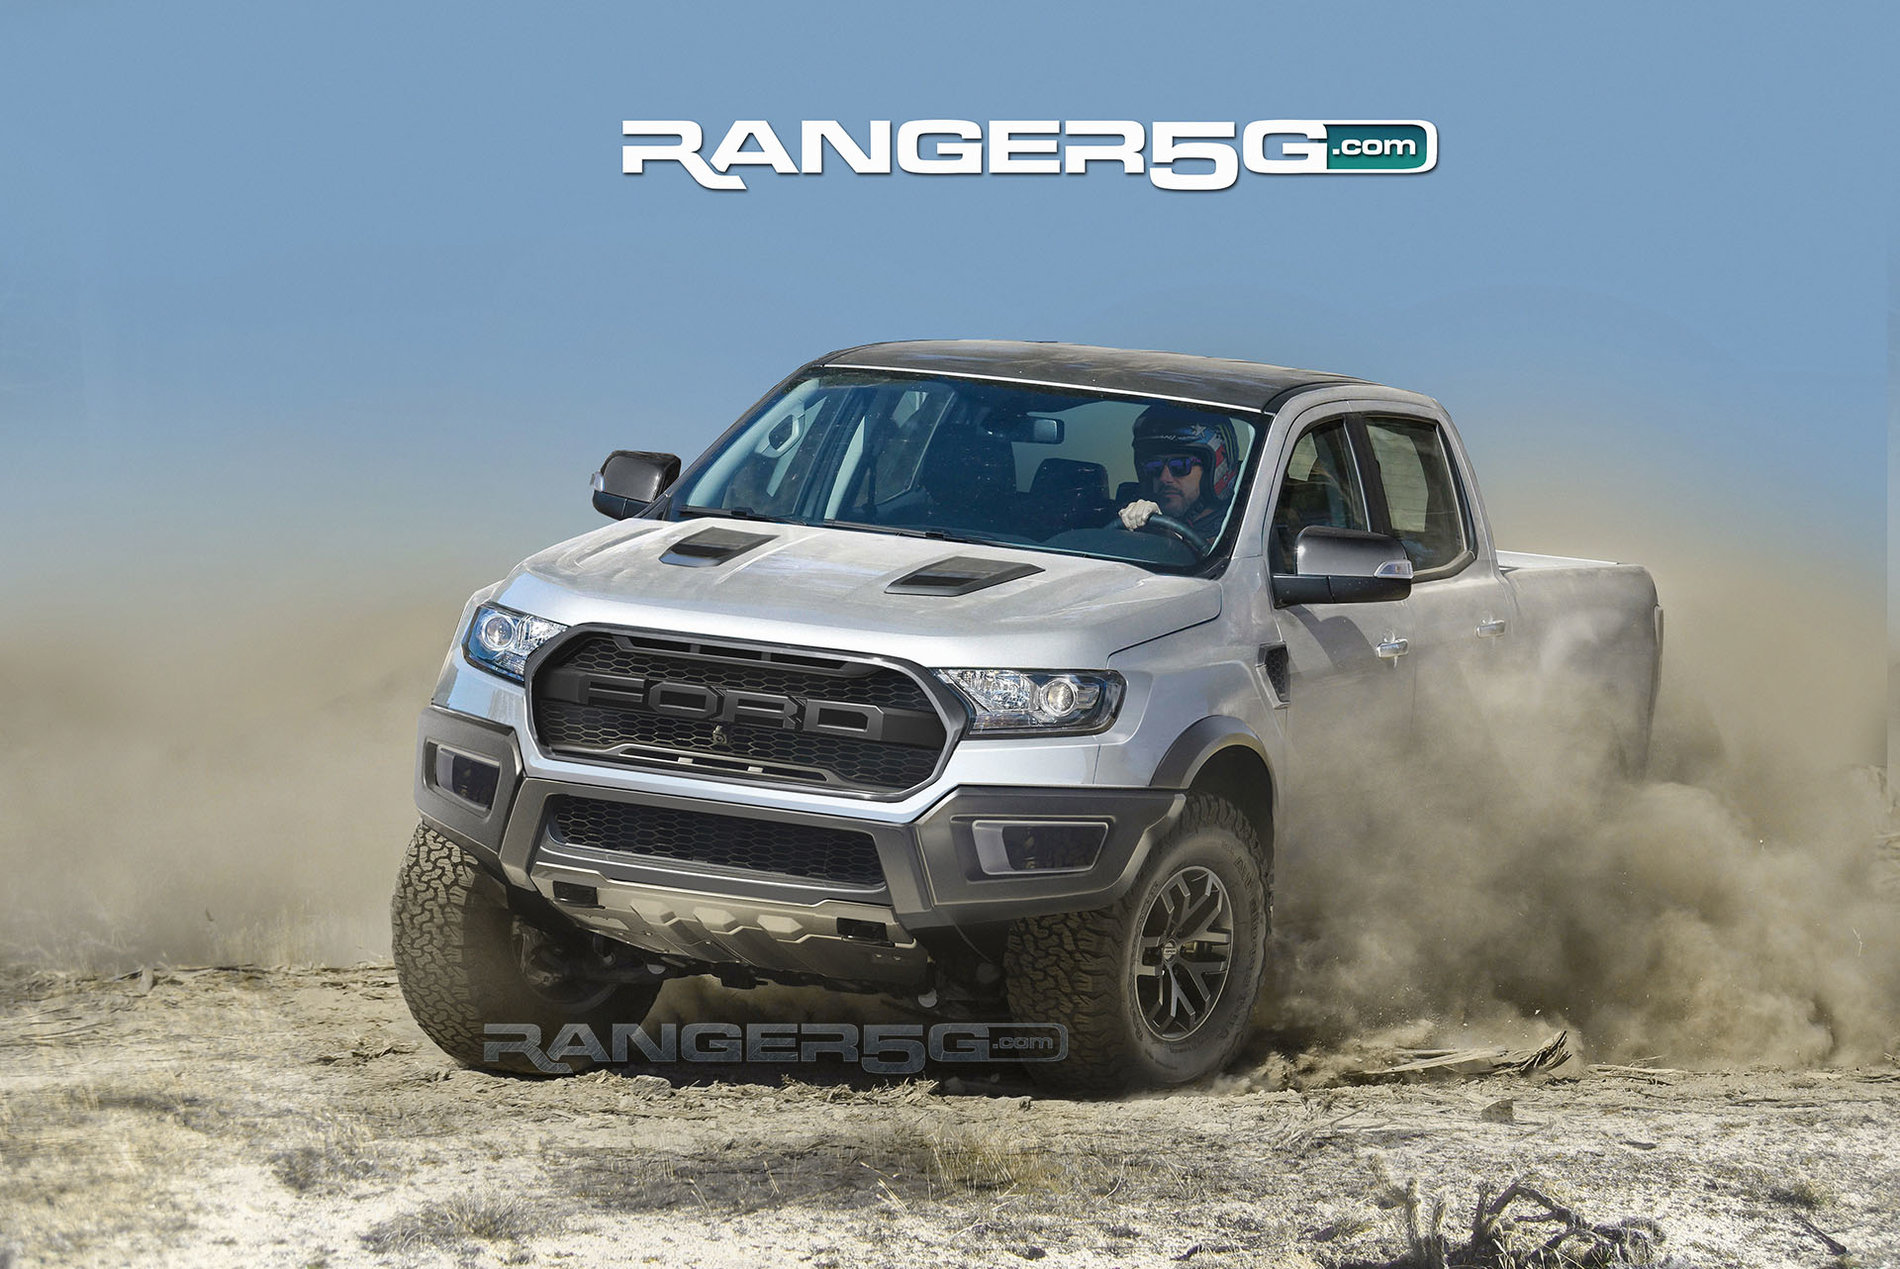 ford ranger raptor preview renders by ranger5g 2019 ford ranger and raptor forum 5th. Black Bedroom Furniture Sets. Home Design Ideas